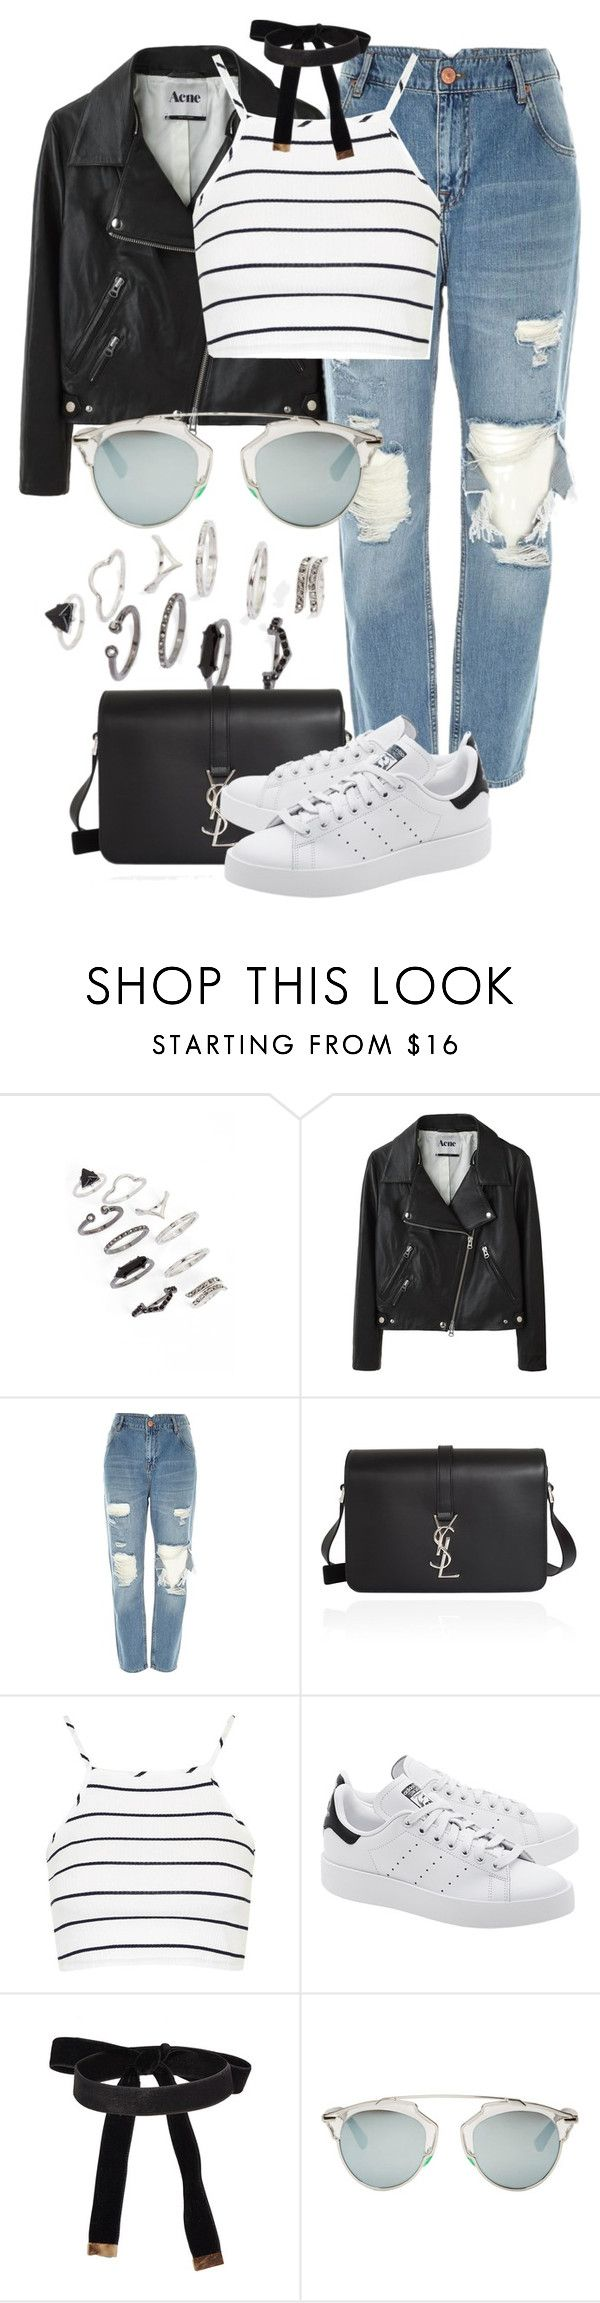 """""""Untitled #2349"""" by annielizjung ❤ liked on Polyvore featuring Topshop, Acne Studios, River Island, Yves Saint Laurent, adidas Originals and Christian Dior"""